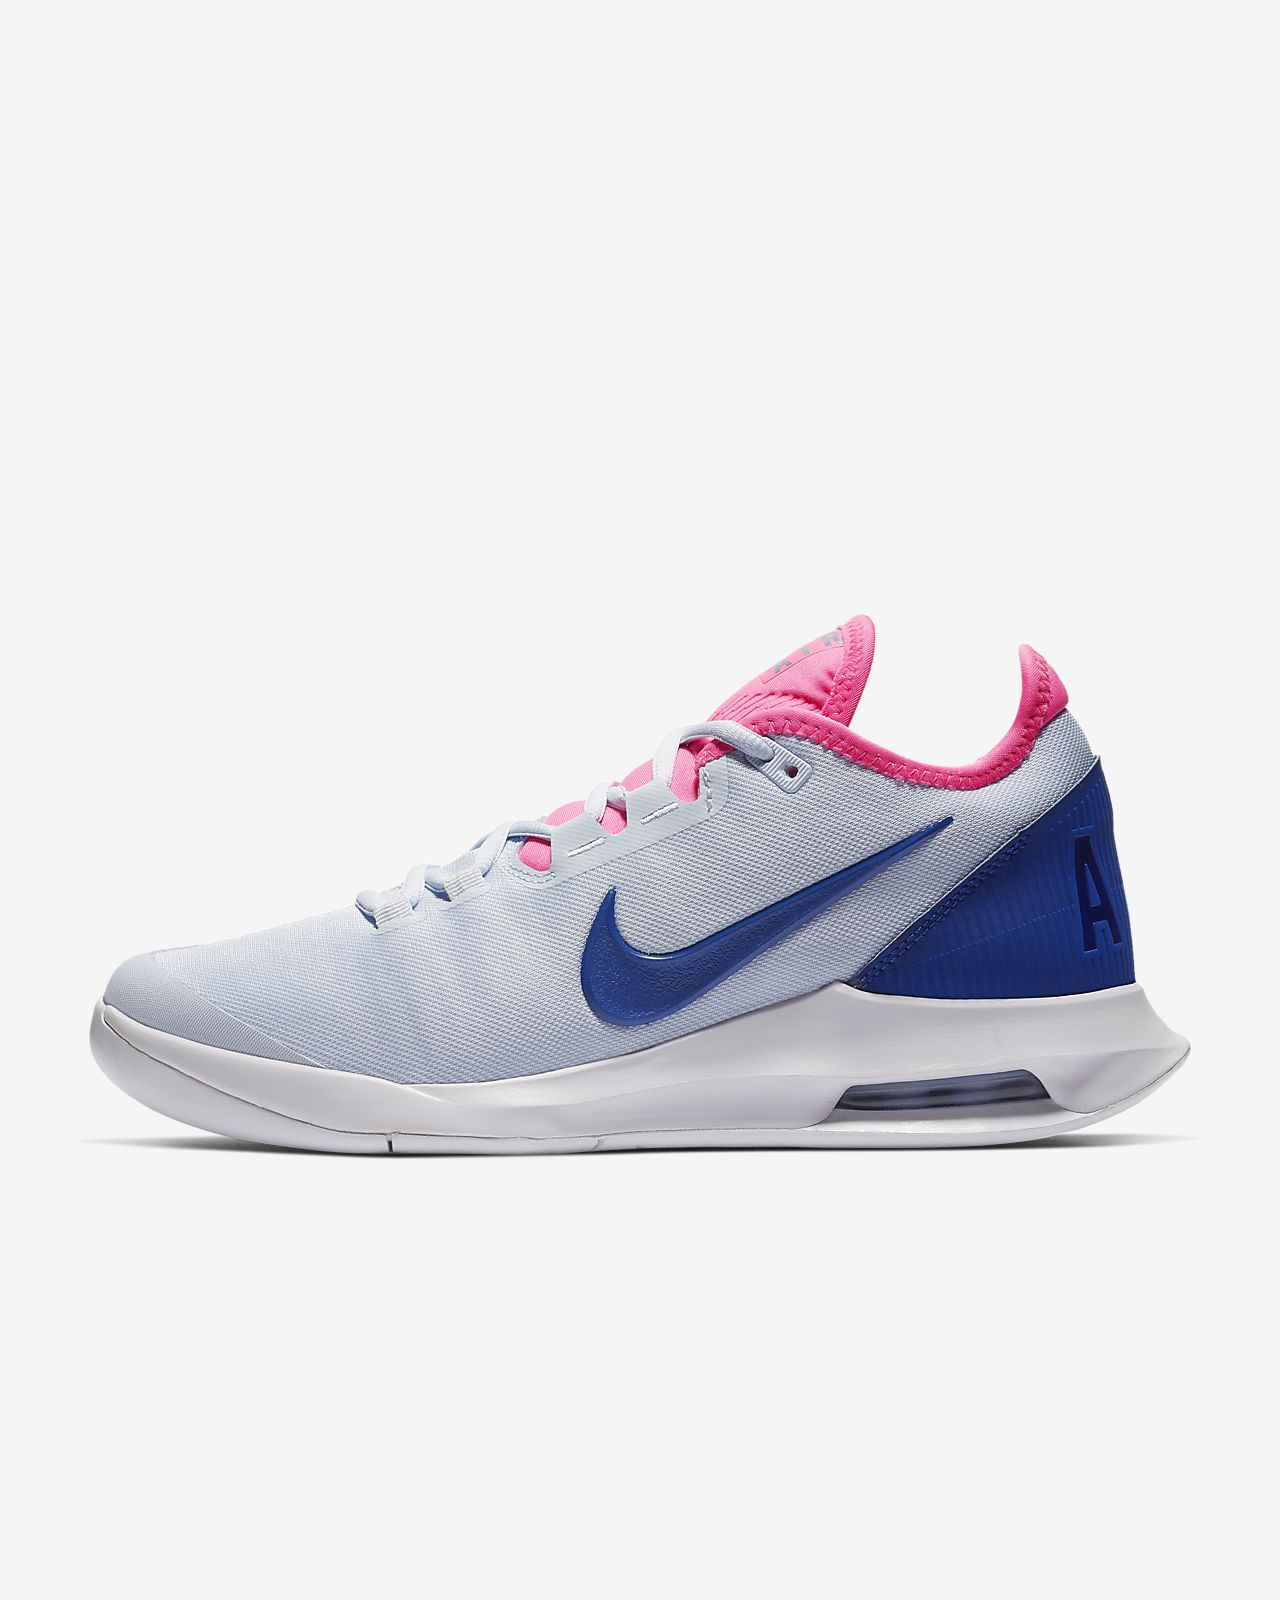 finest selection da0a5 0b2ef ... NikeCourt Air Max Wildcard Women s Tennis Shoe